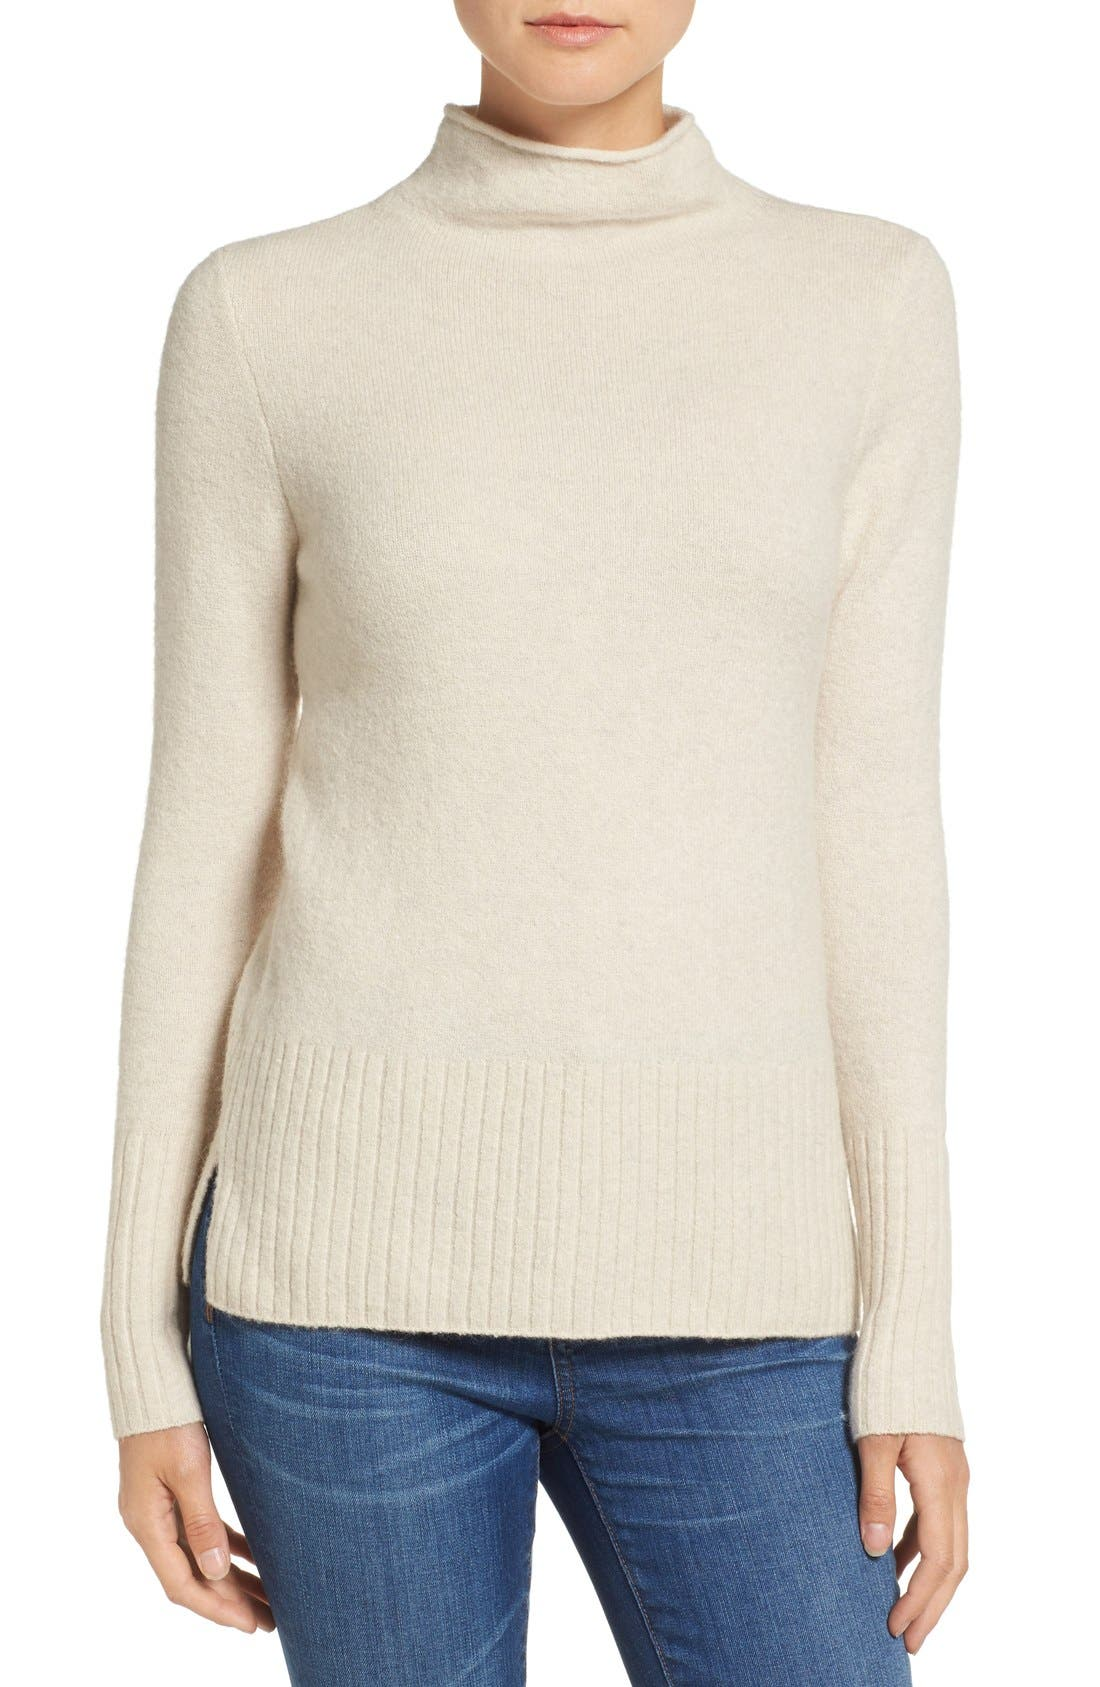 Madewell Inland Rolled Turtleneck Sweater